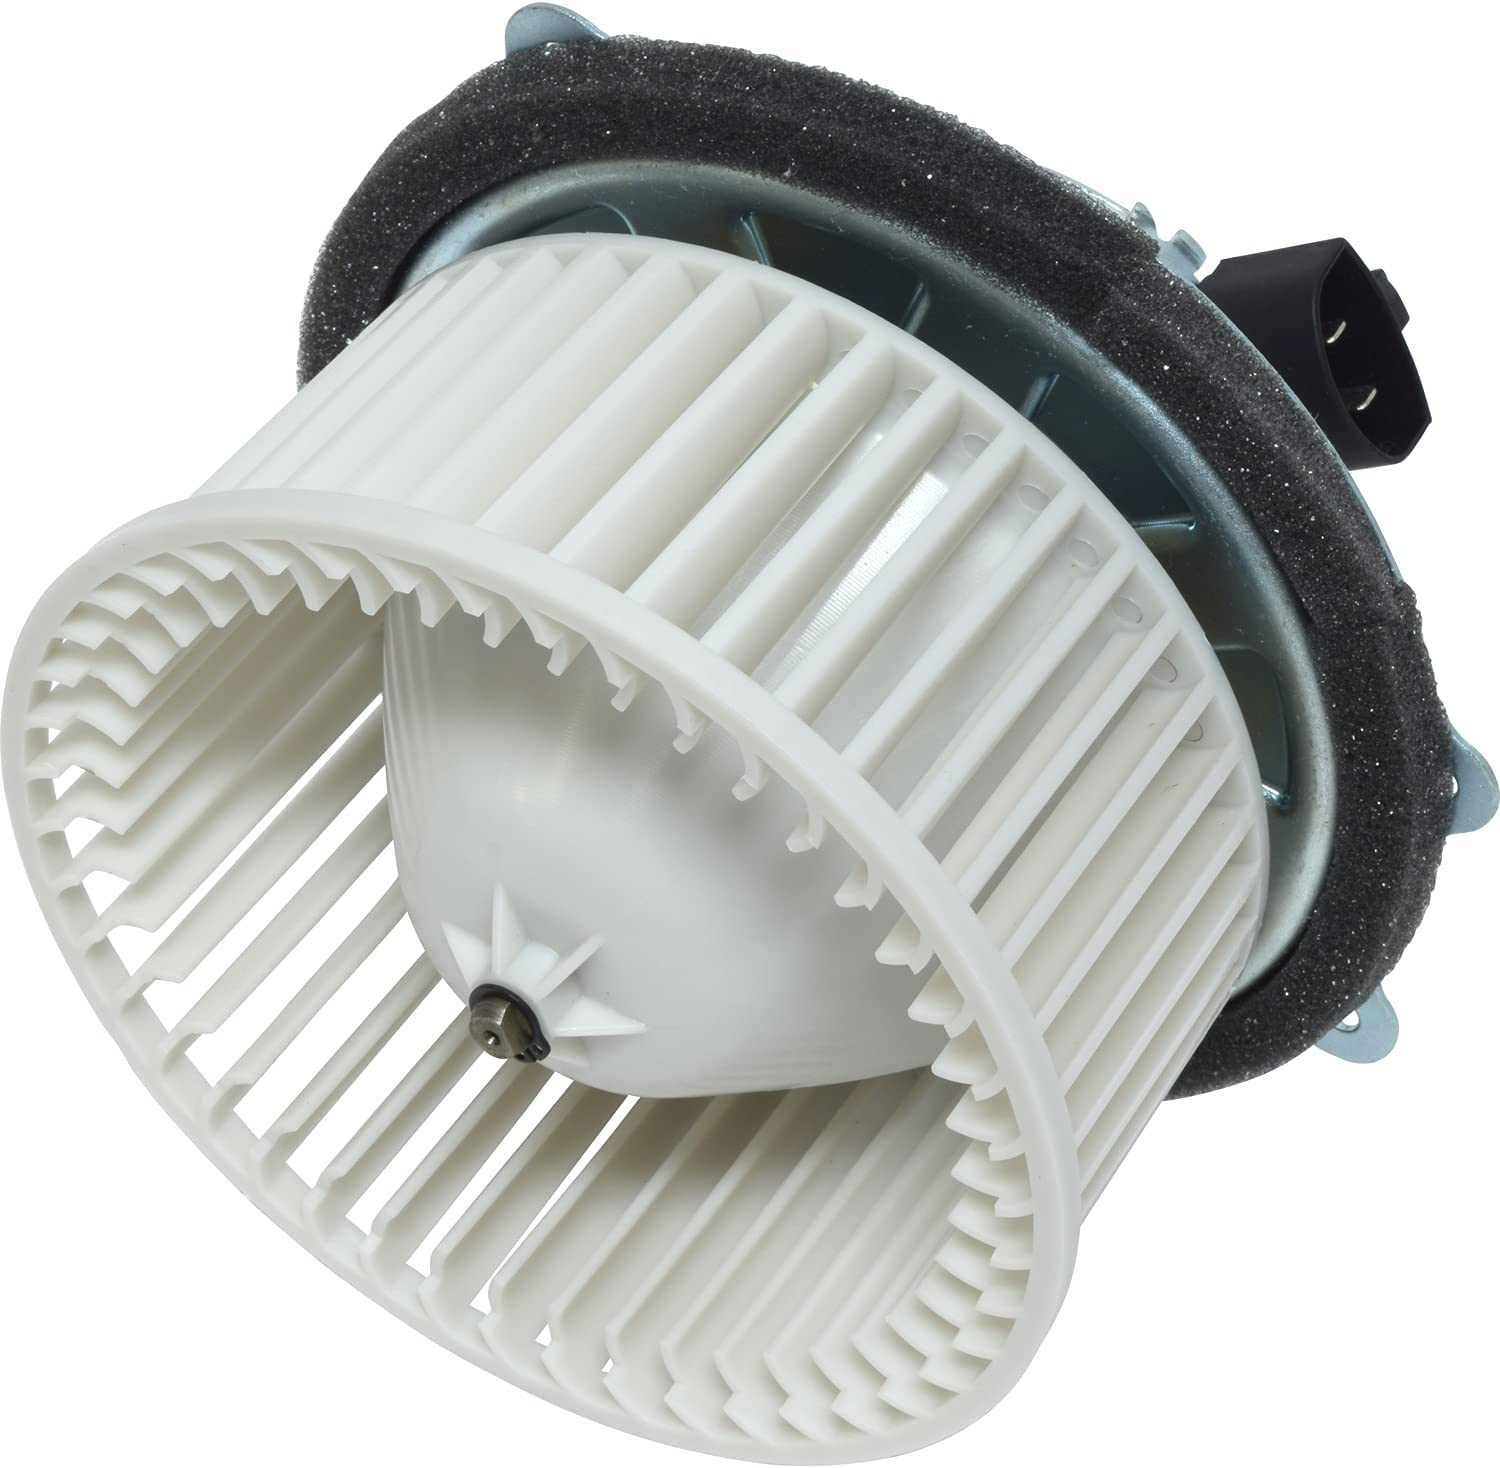 discount New HVAC Blower Motor Tracer Escort Ranking TOP2 for